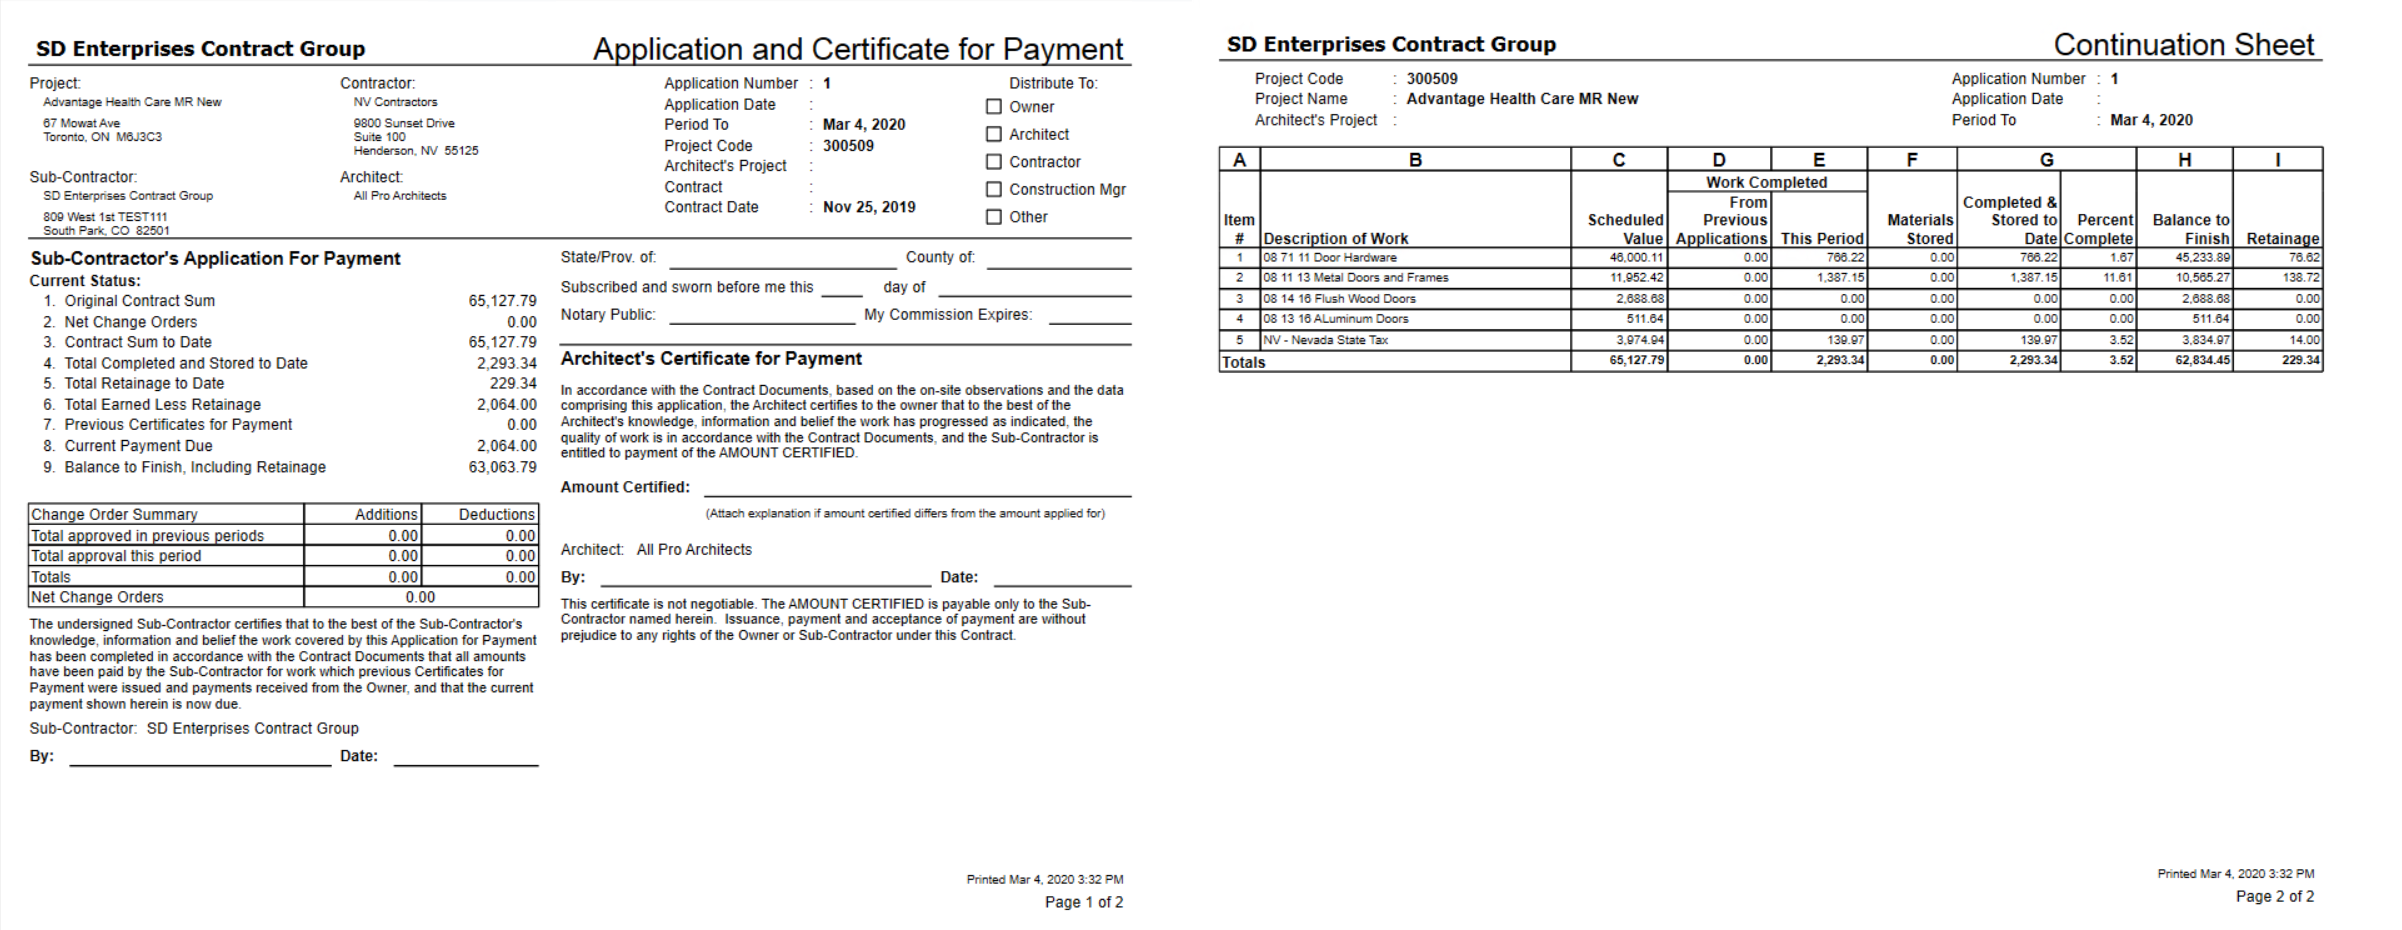 Application and Certificate for Payment Report.